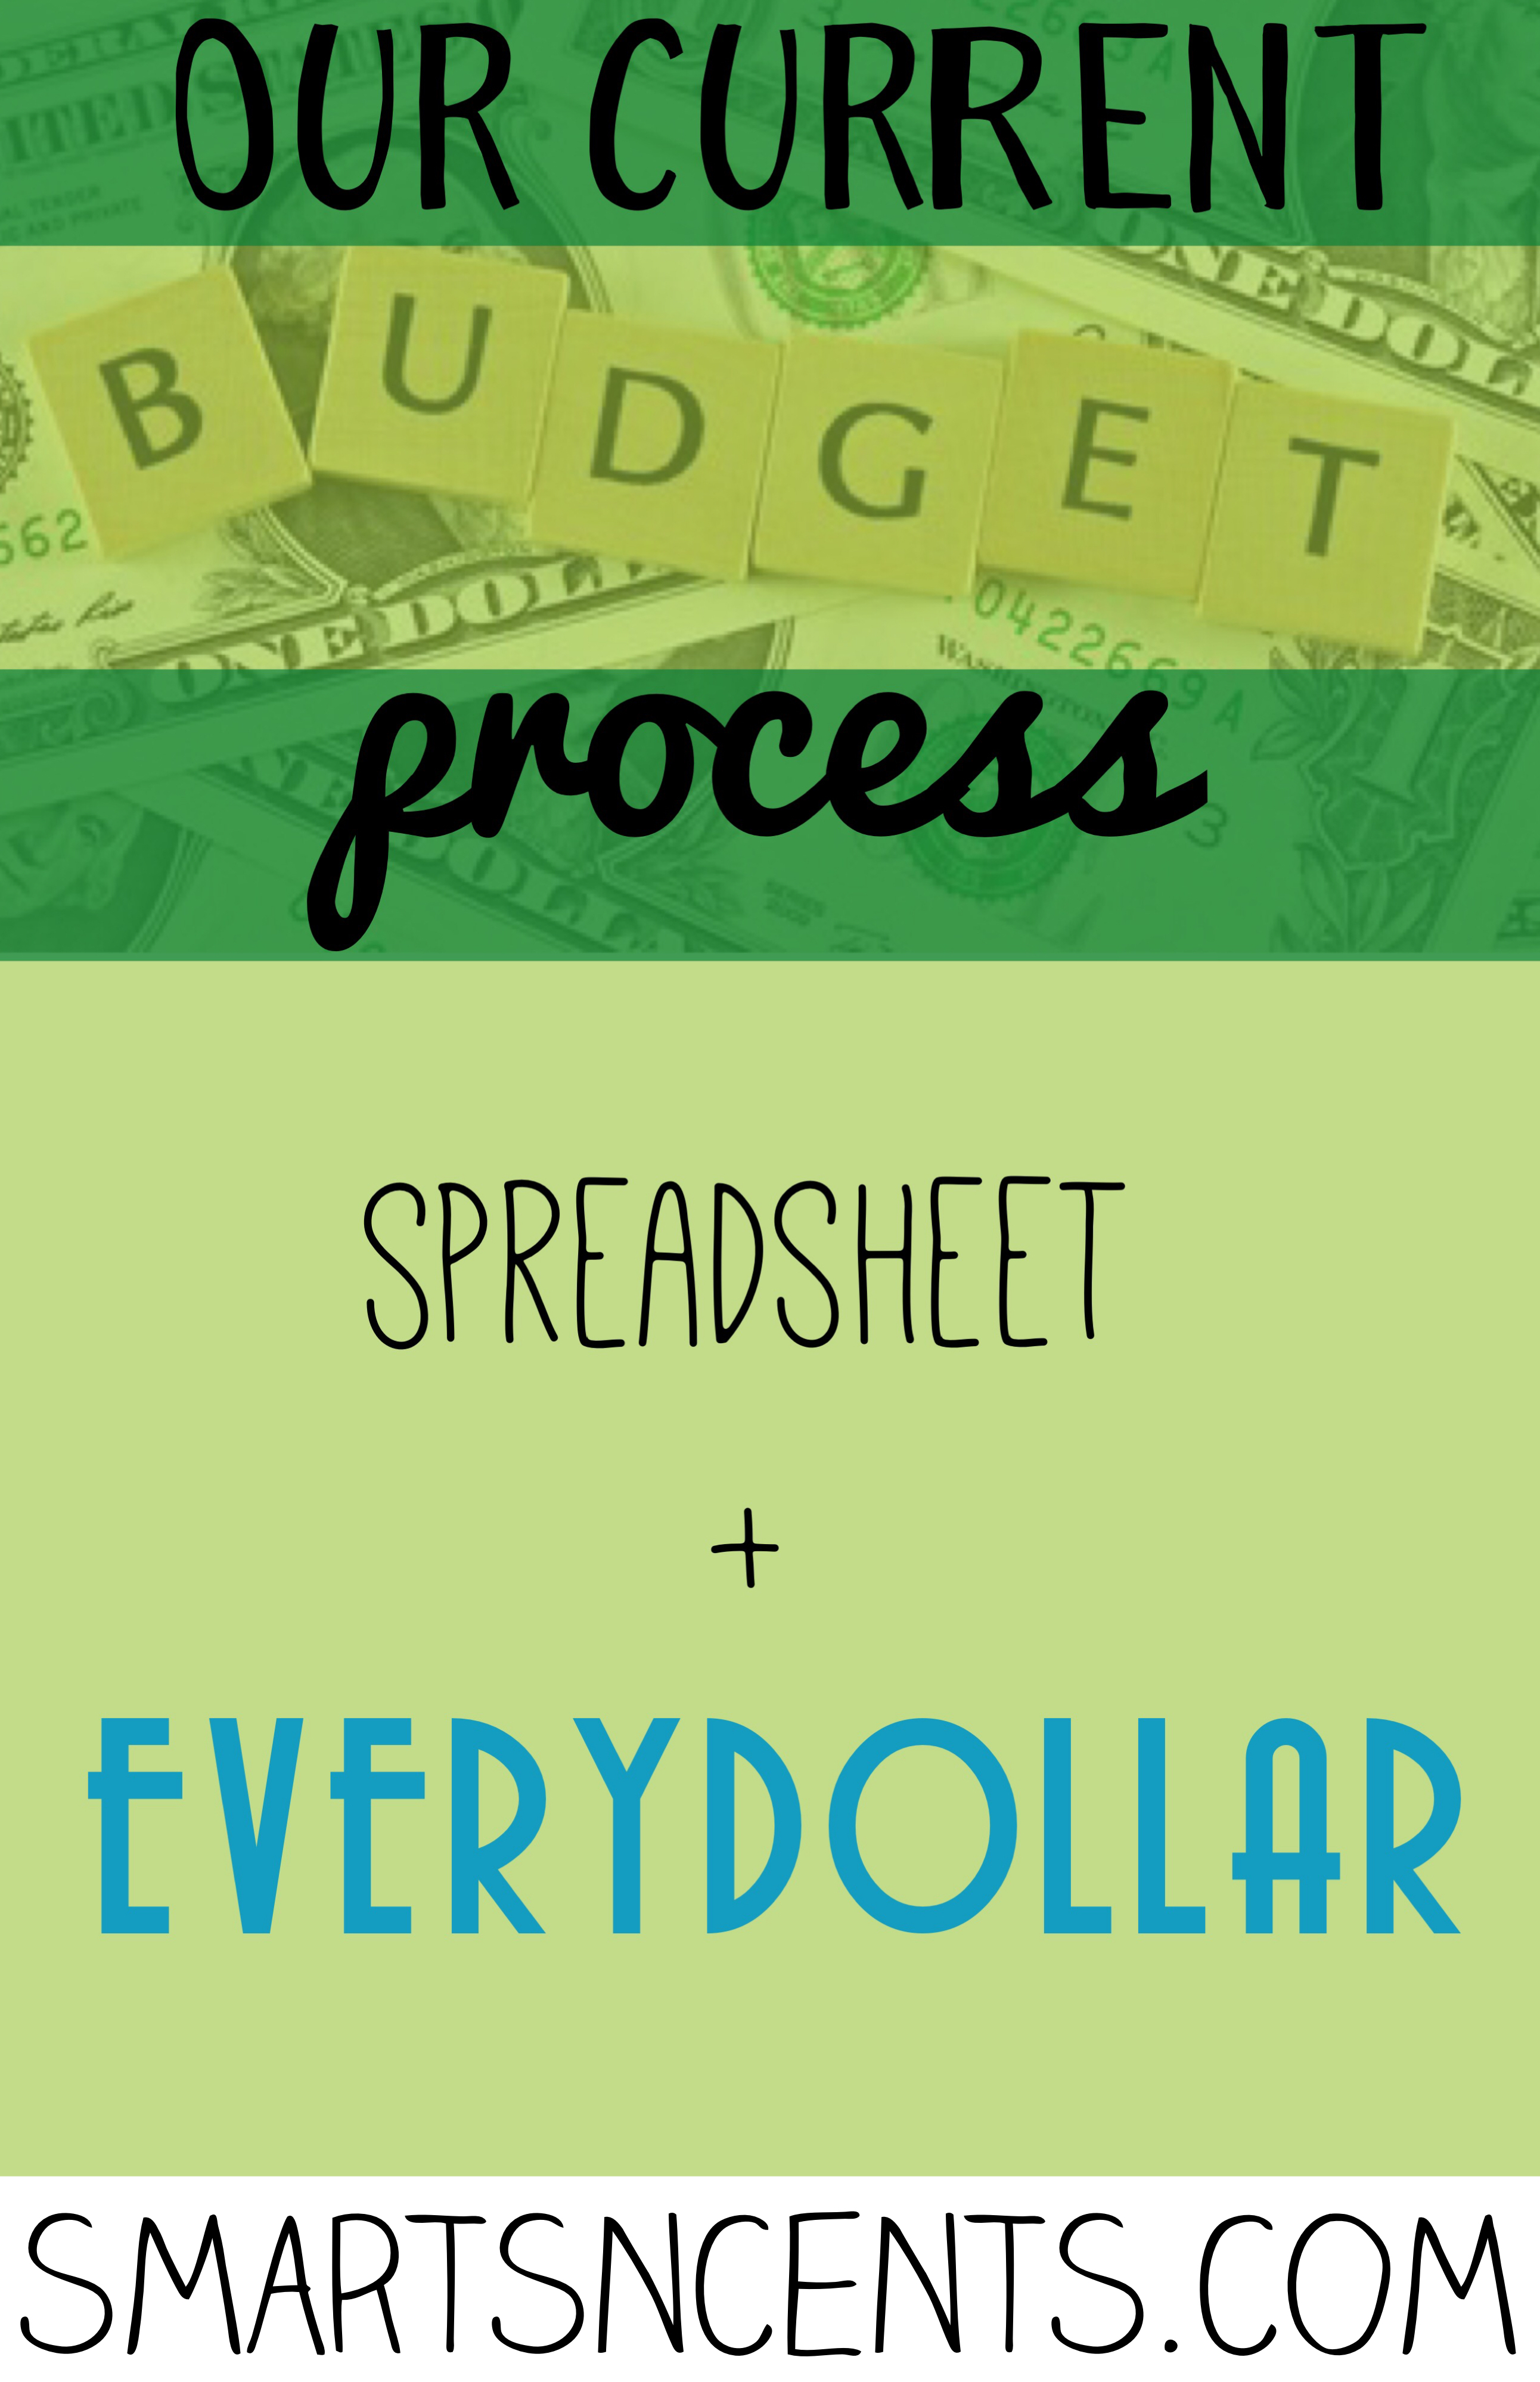 Every Dollar Budget Spreadsheet Intended For Our Current Budgeting Process: Customized Spreadsheet   Everydollar